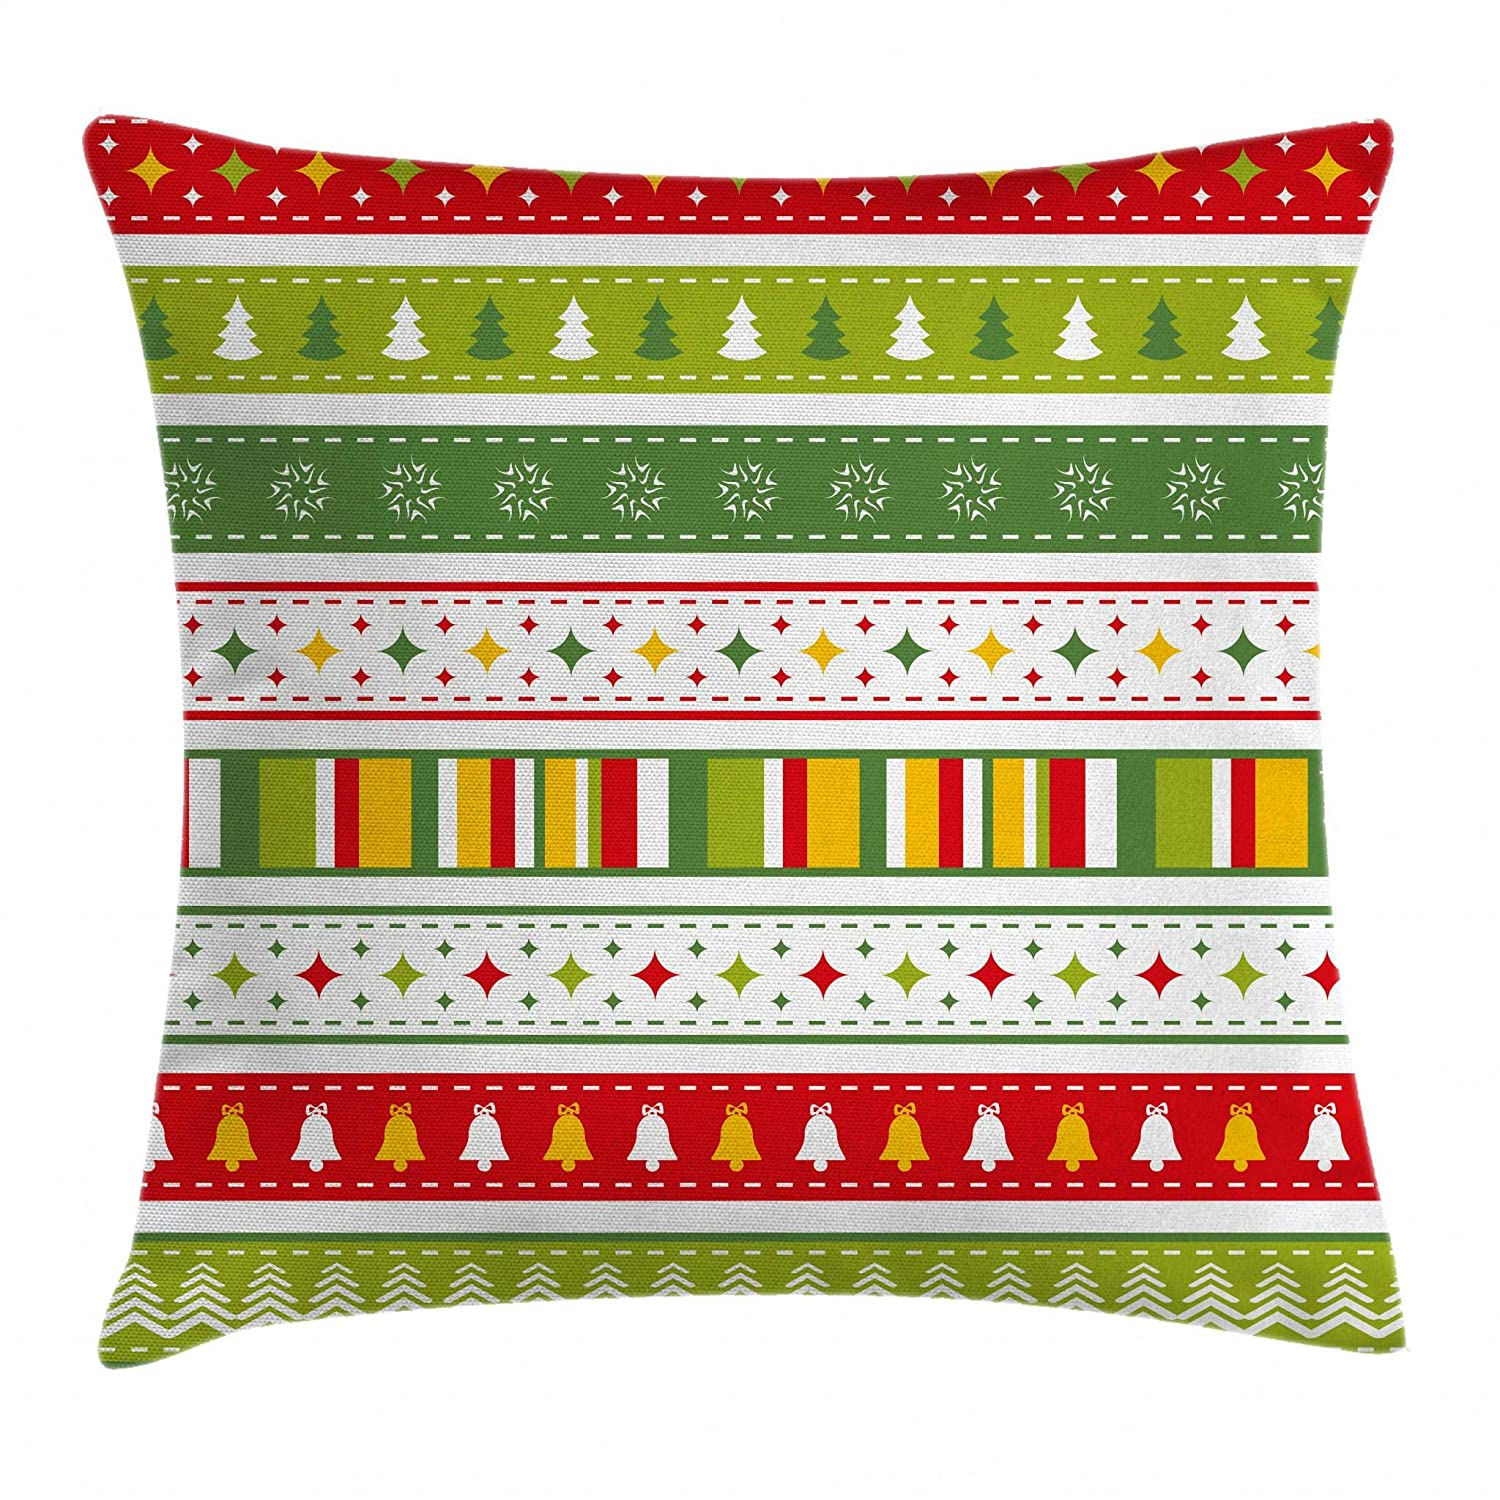 Decorative Square Accent Pillow Case Tribal African Pattern on Ritual Masks Ethnic Accessories Indigenous Culture 18 X 18 Inches Ambesonne Red and Brown Throw Pillow Cushion Cover Multicolor min/_50905/_18x18